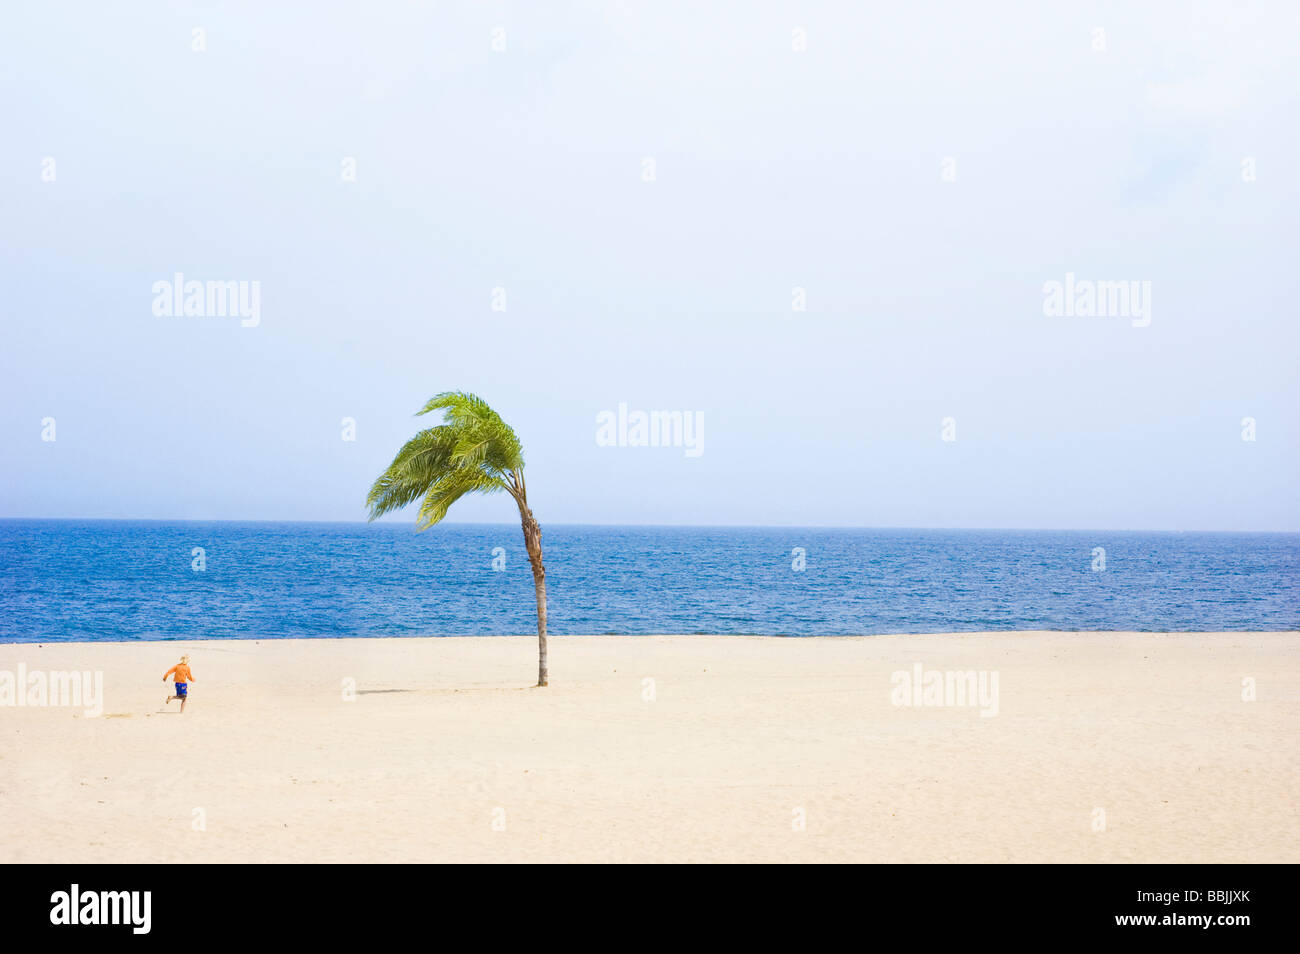 Child running on Sandy Beach towards Ocean with One Palm Tree Stock Photo